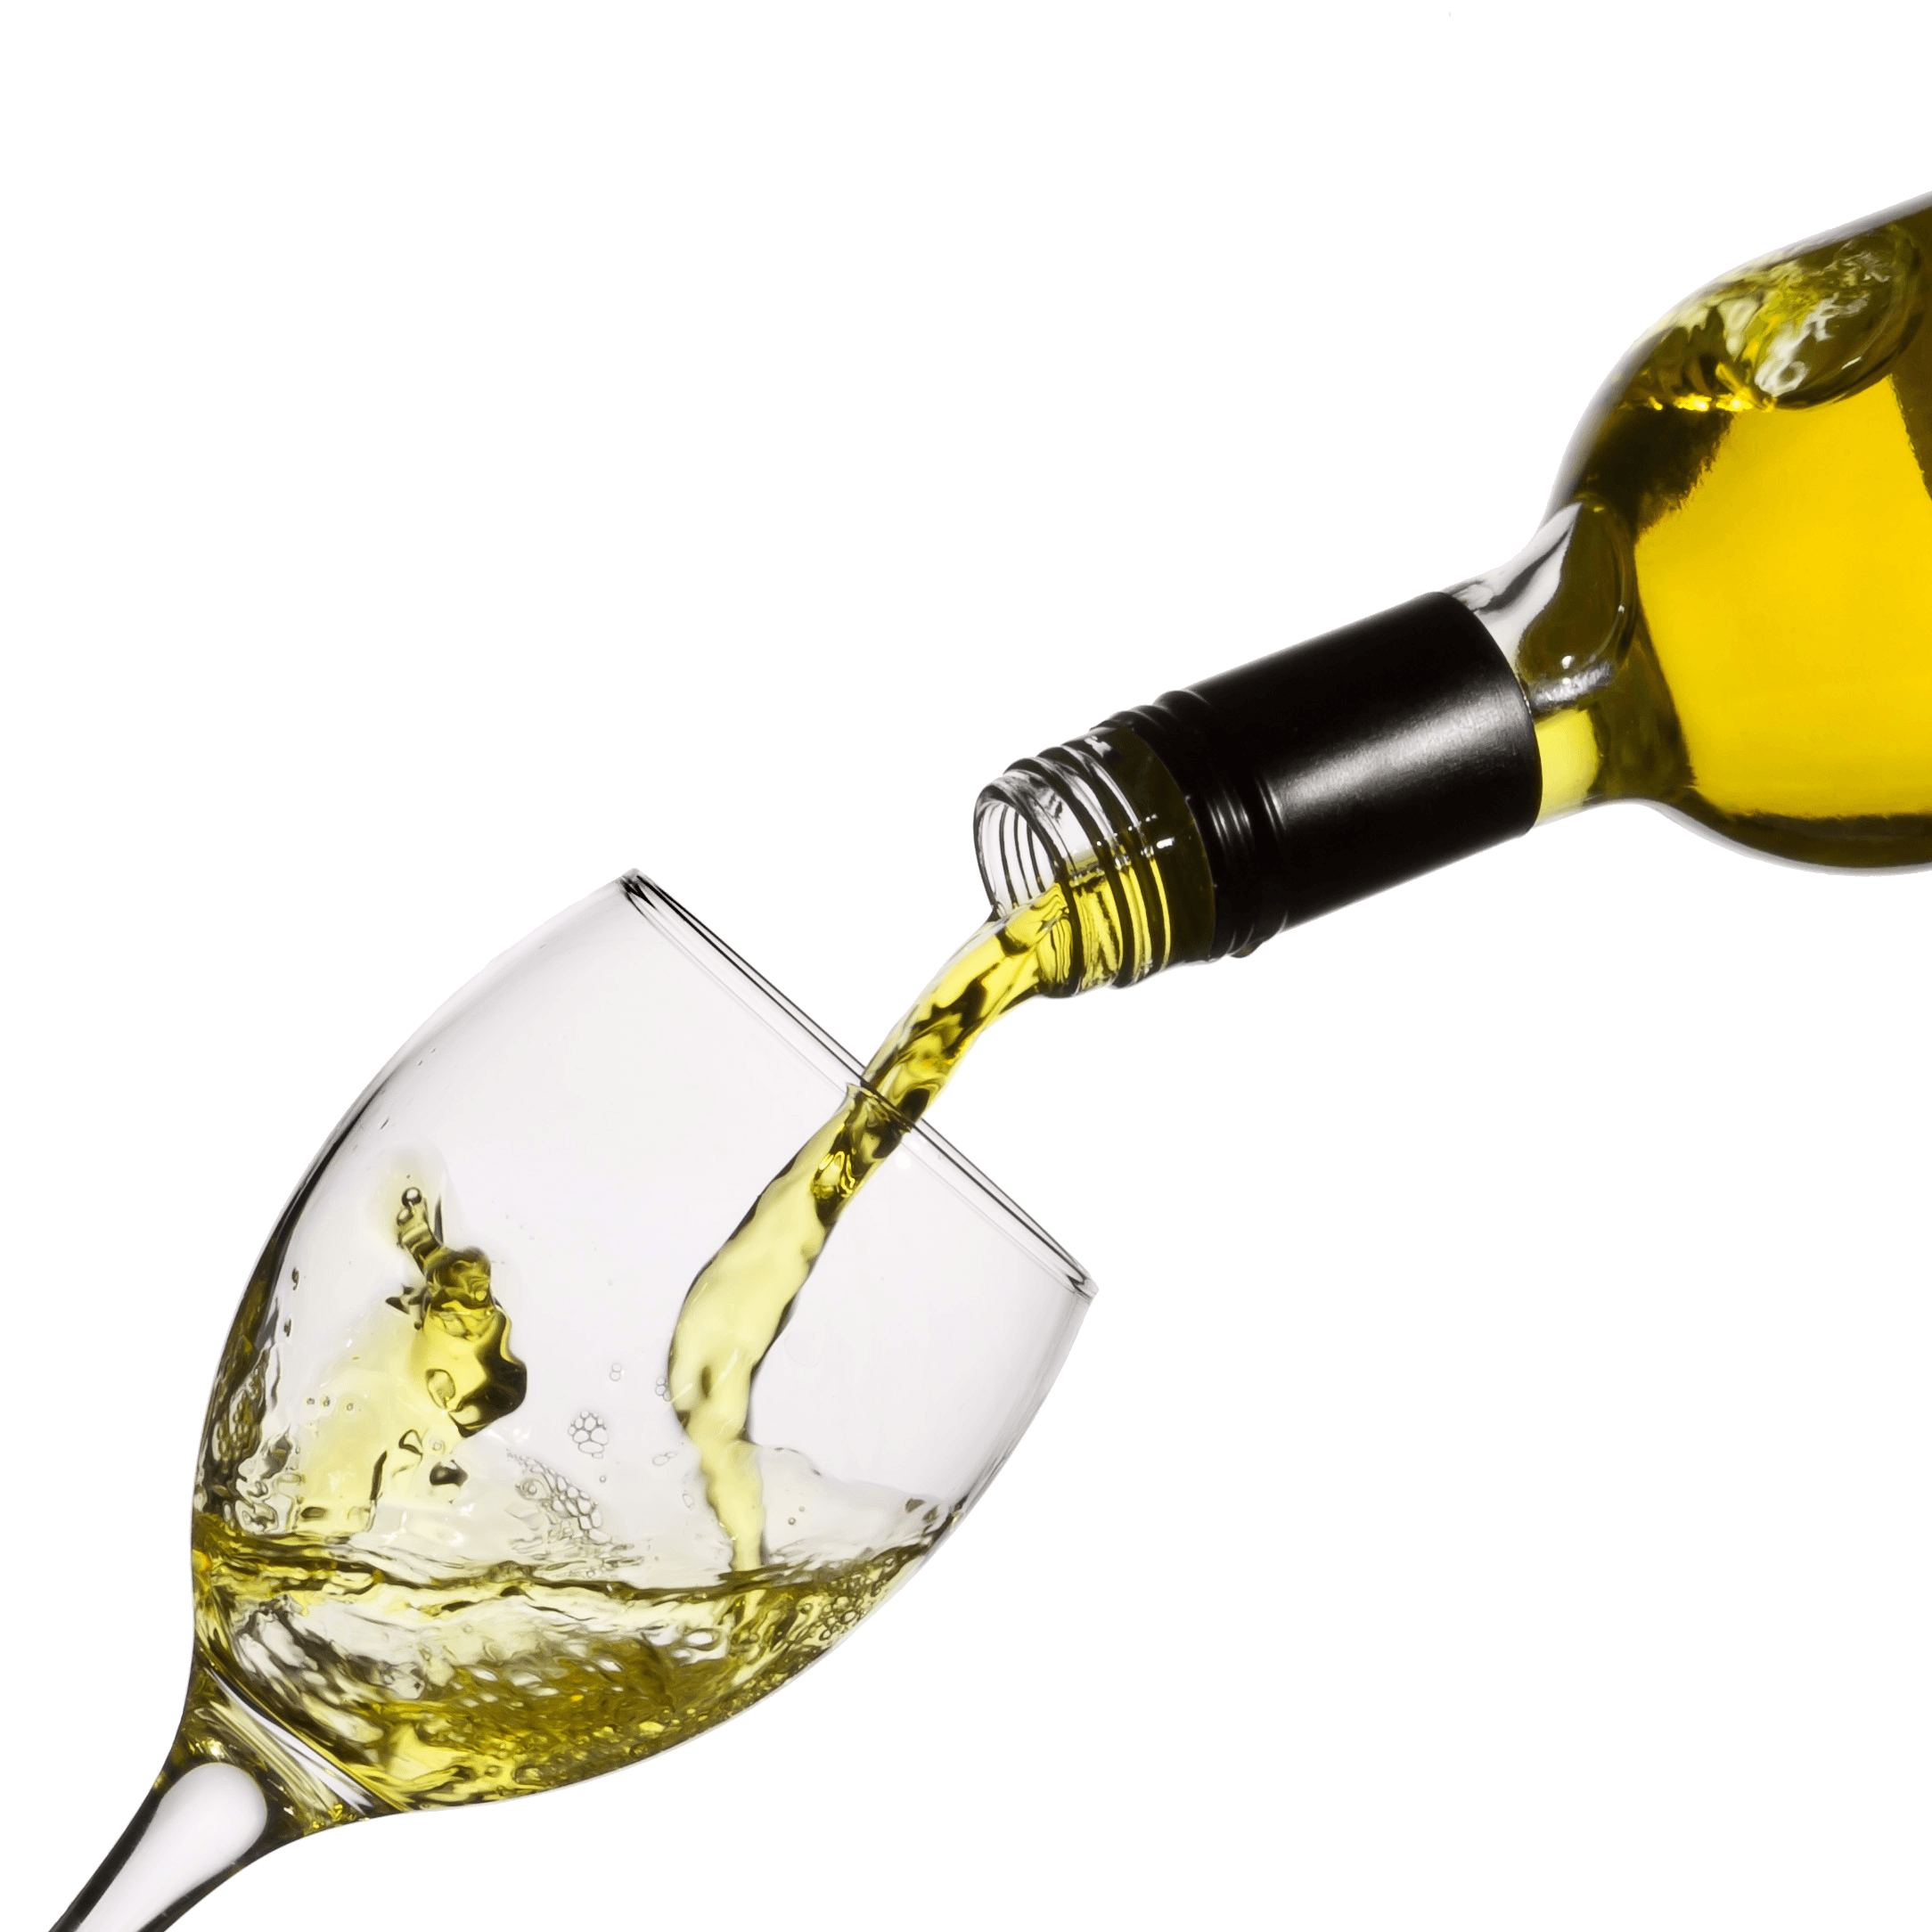 Pouring alcohol png. White wine glass transparent